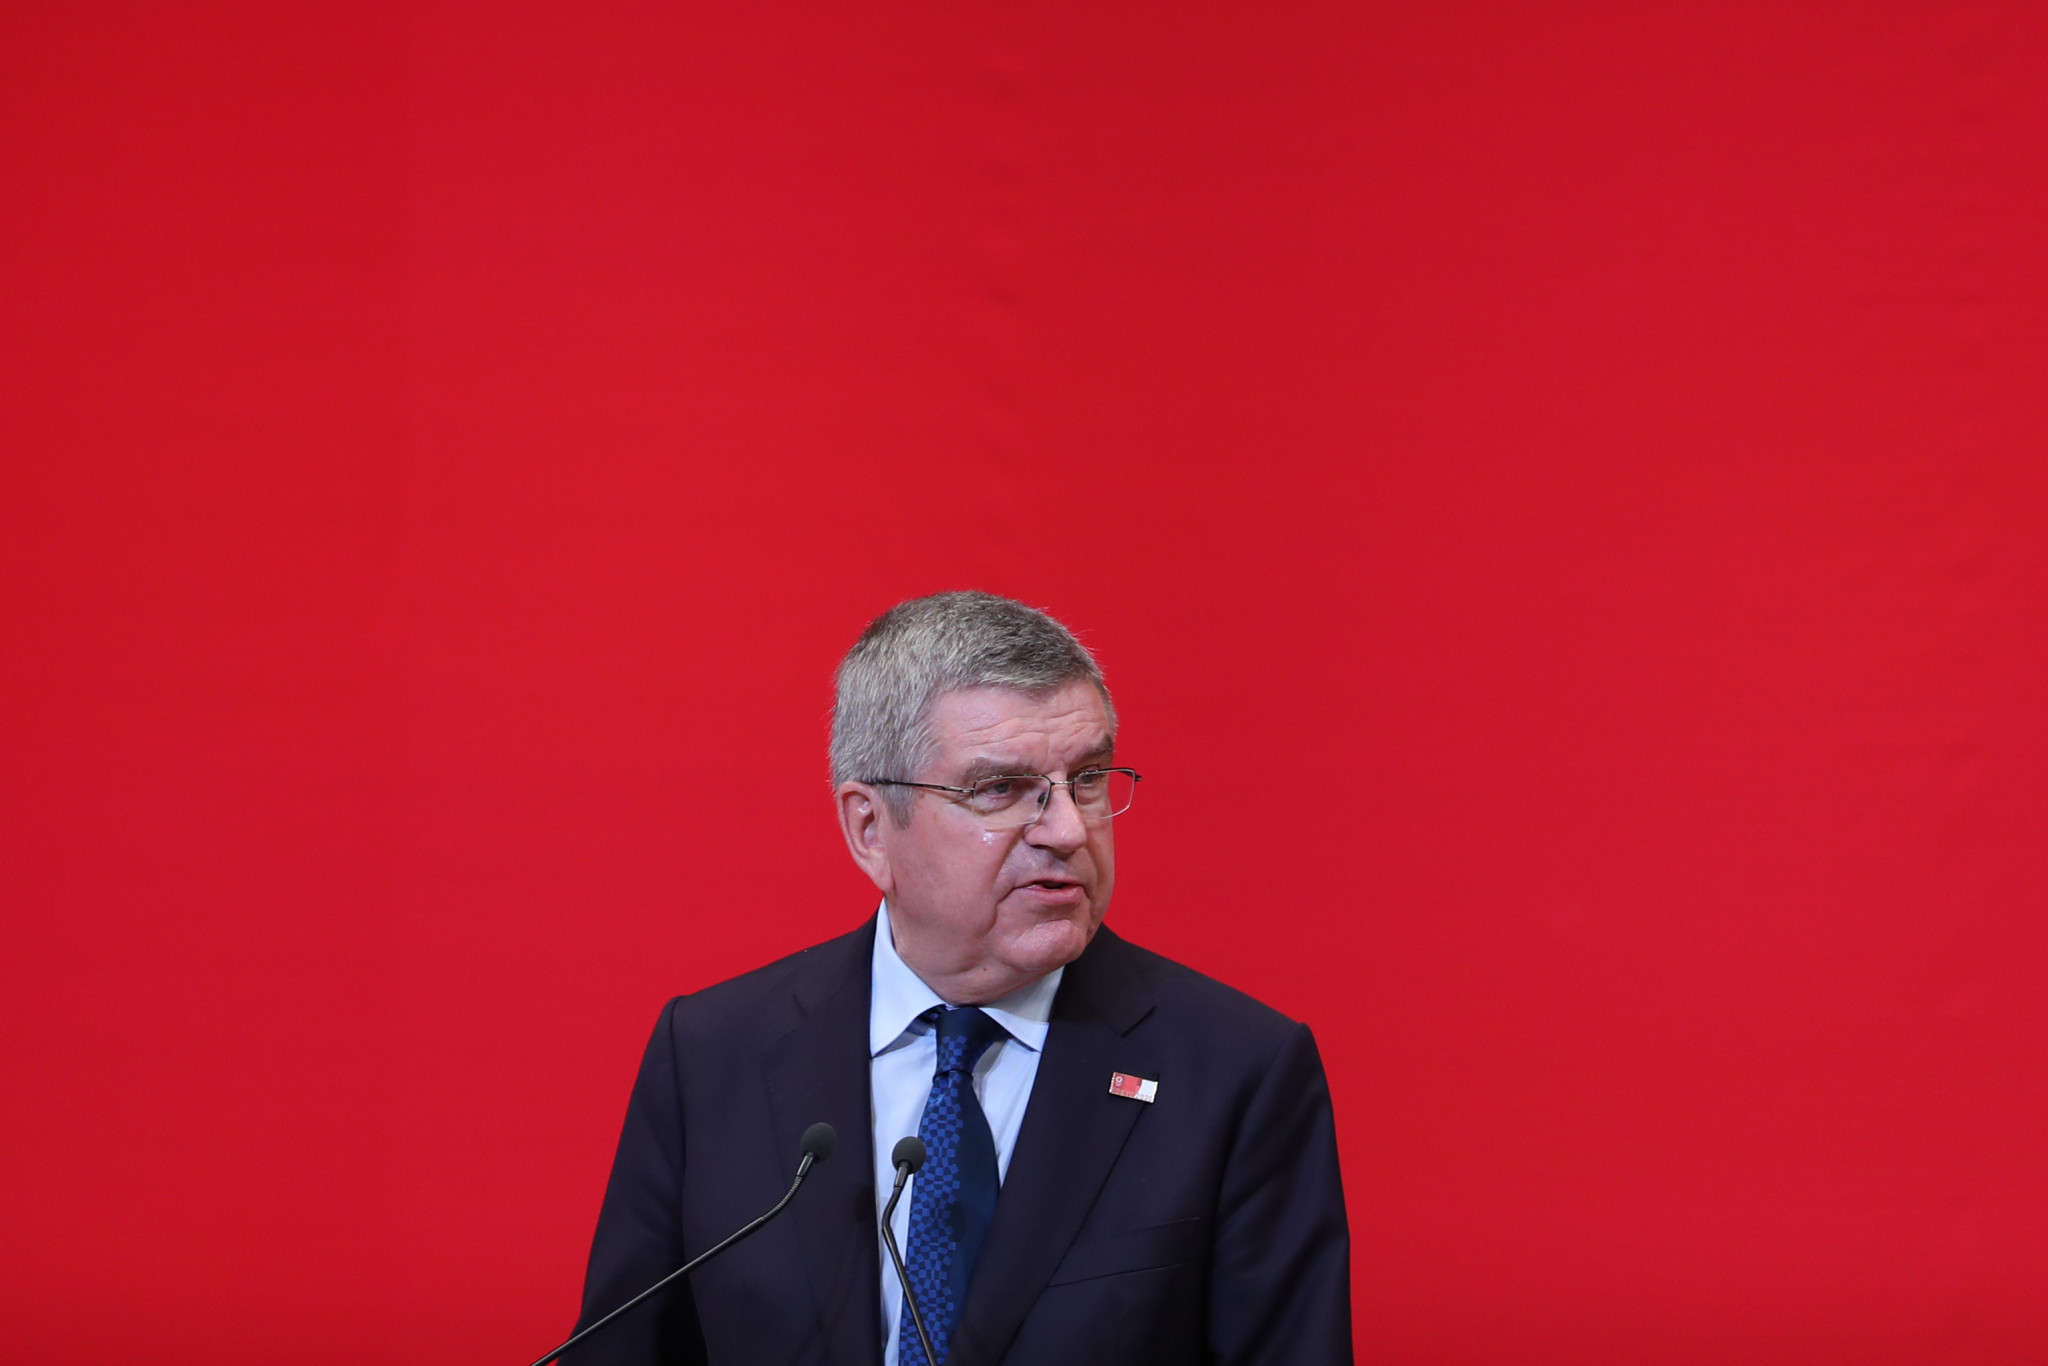 IOC President Thomas Bach said climate change had contributed to a reduction in bidding cities for the Olympic Games ©Getty Images